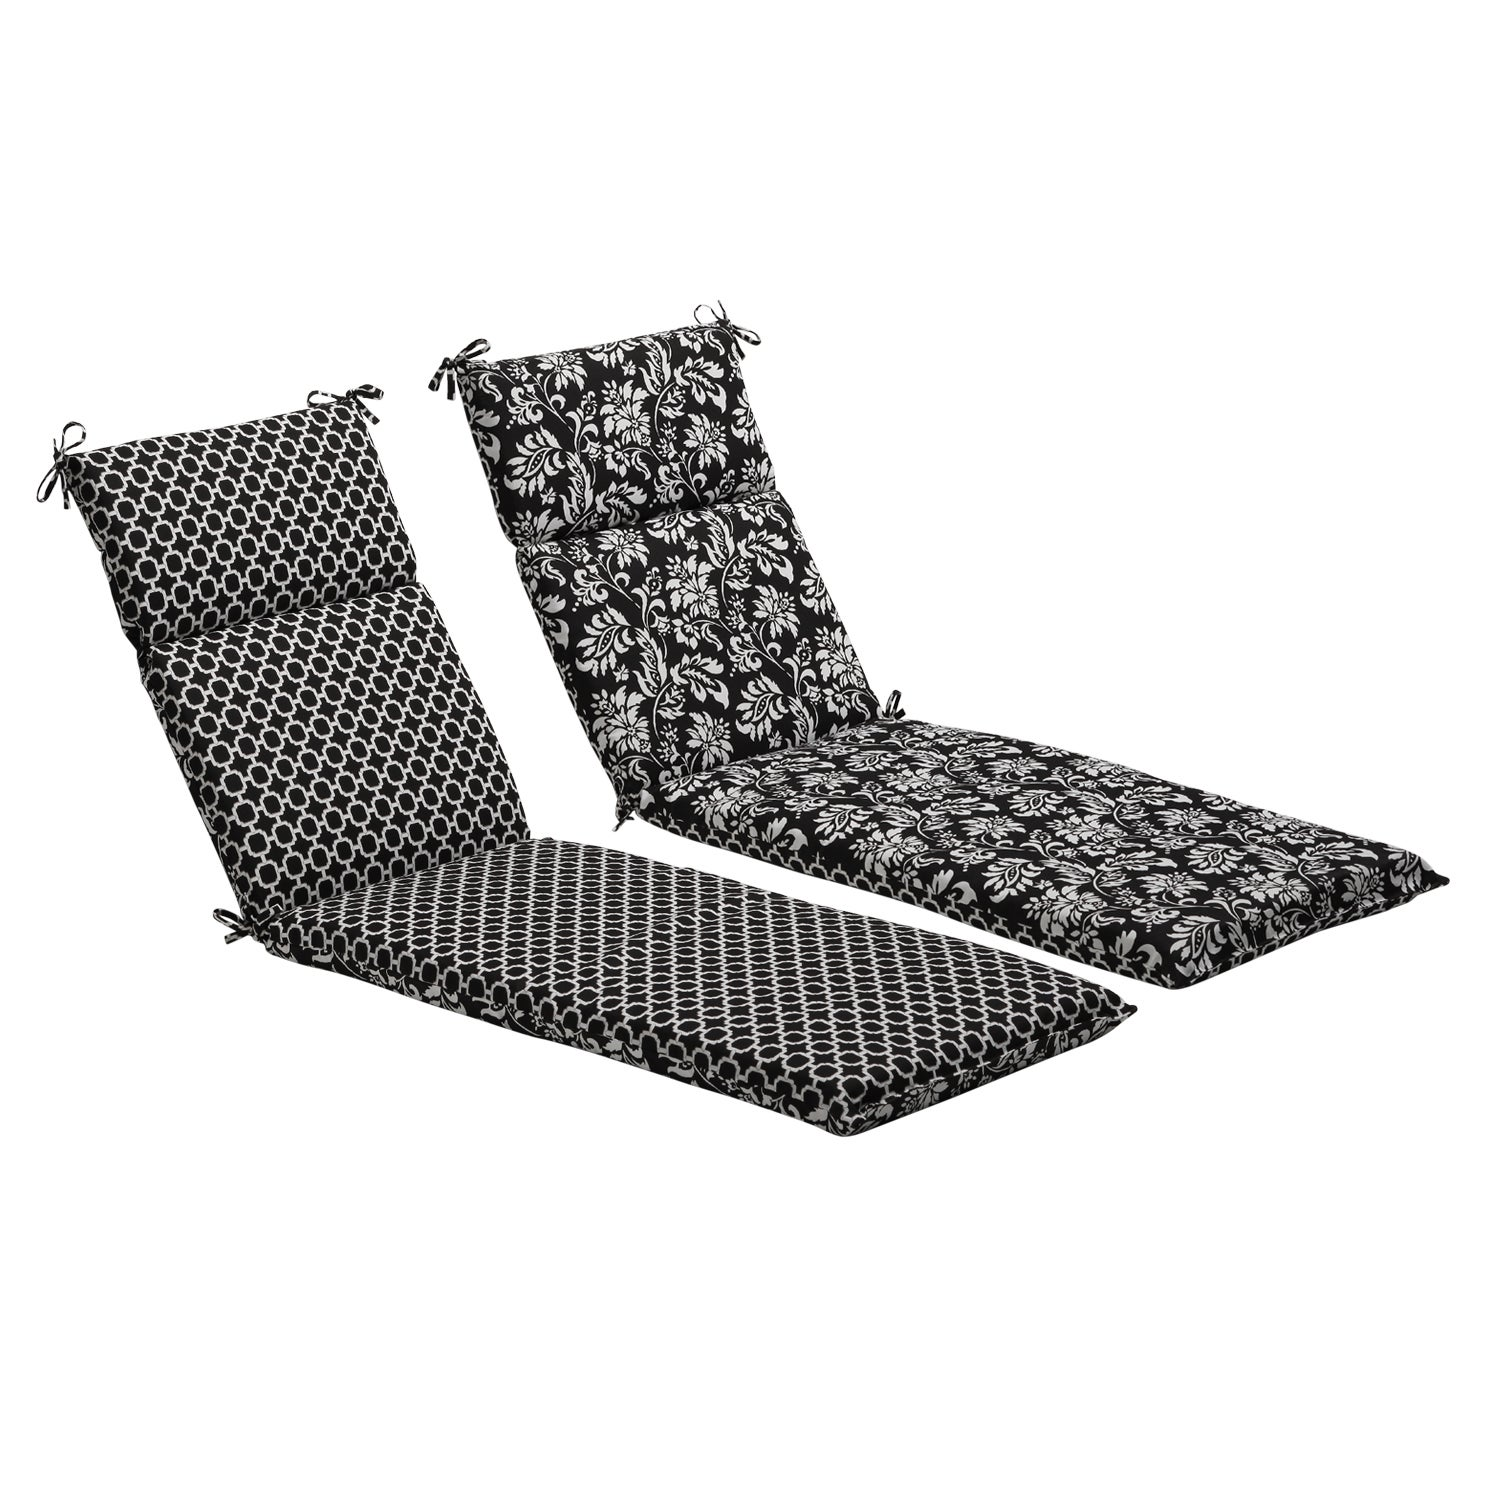 Pillow Perfect Black/ White Reversible Geometric/ Floral Outdoor Chaise Lounge Cushion